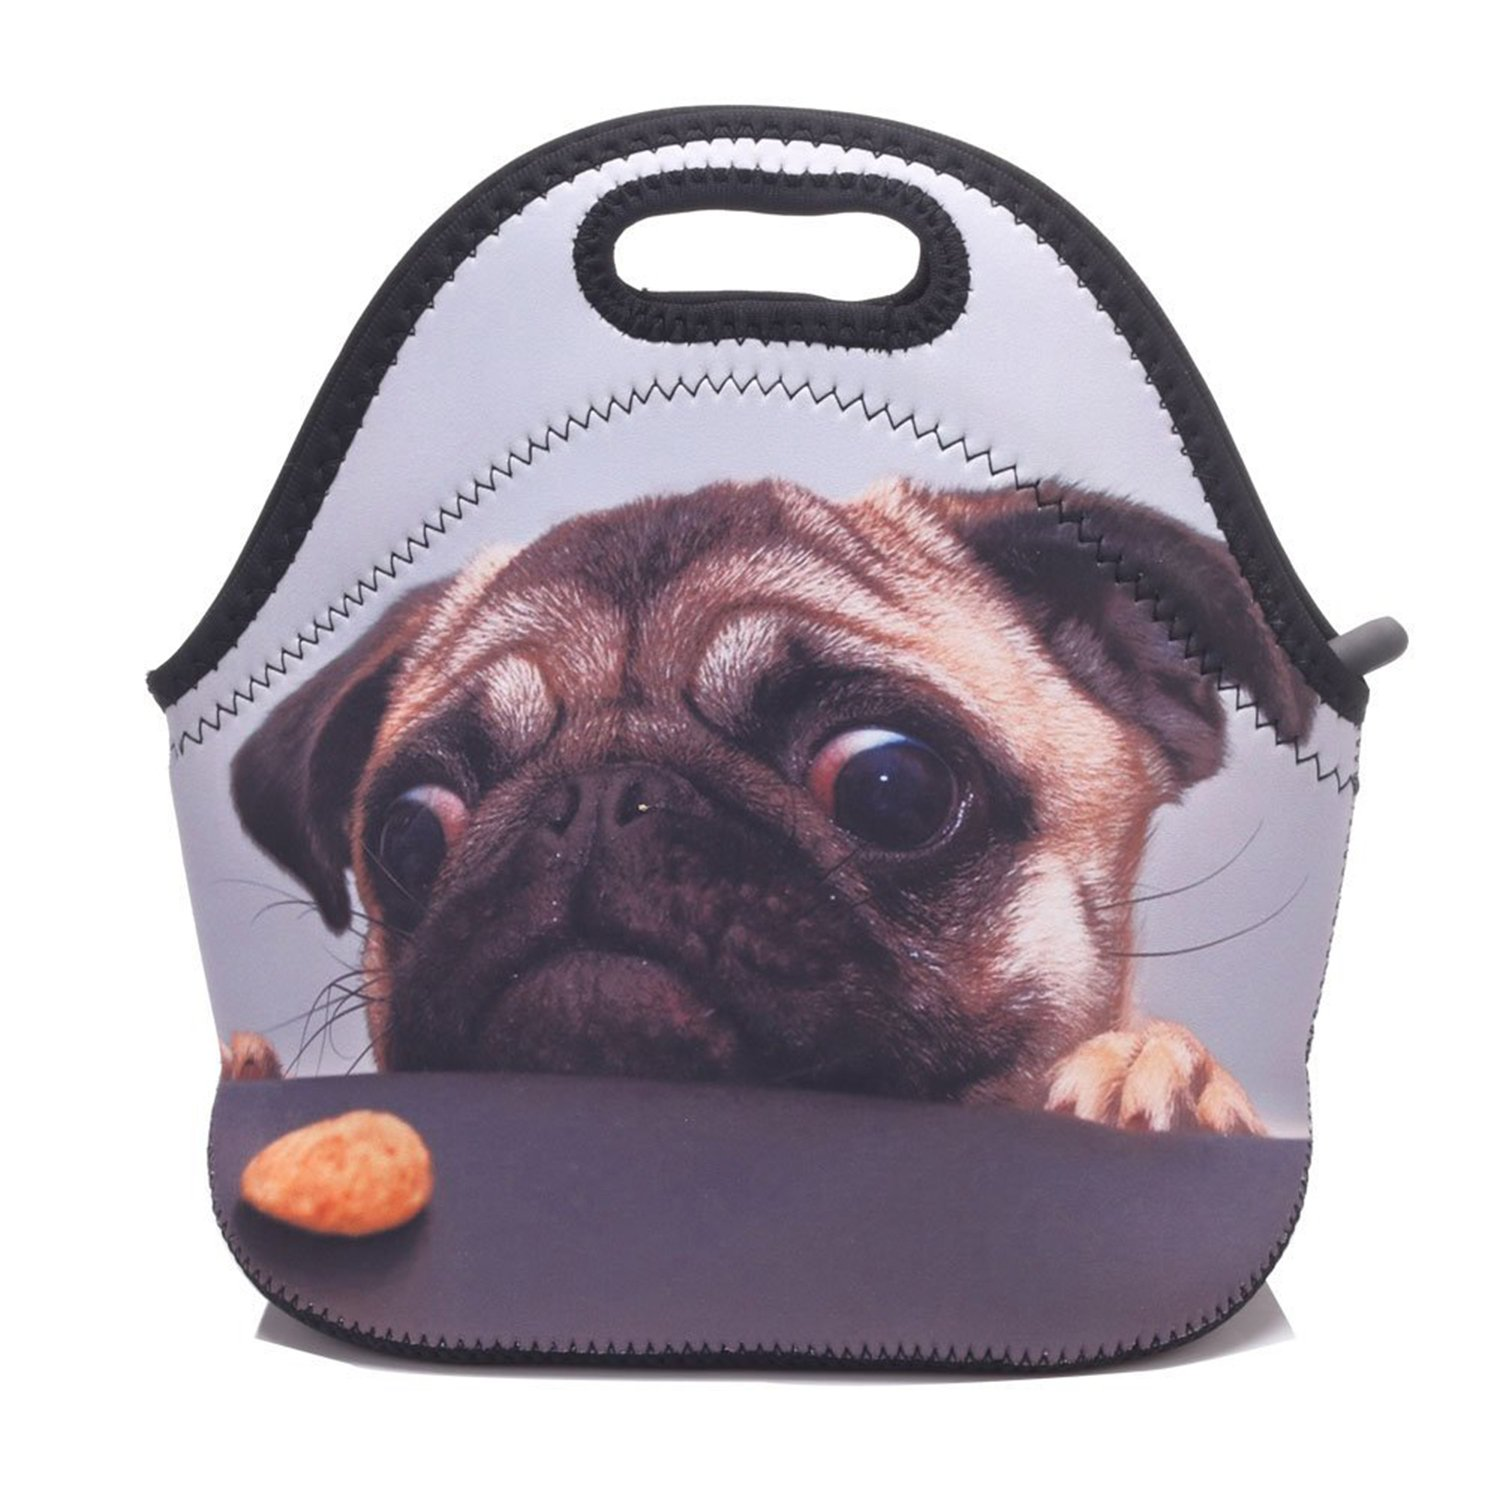 ZMvise Pretty Sad Pug Lunch Tote Insulated Reusable Picnic Lunch Bags Boxes Men Women Kids Toddler Nurses Travel Bag